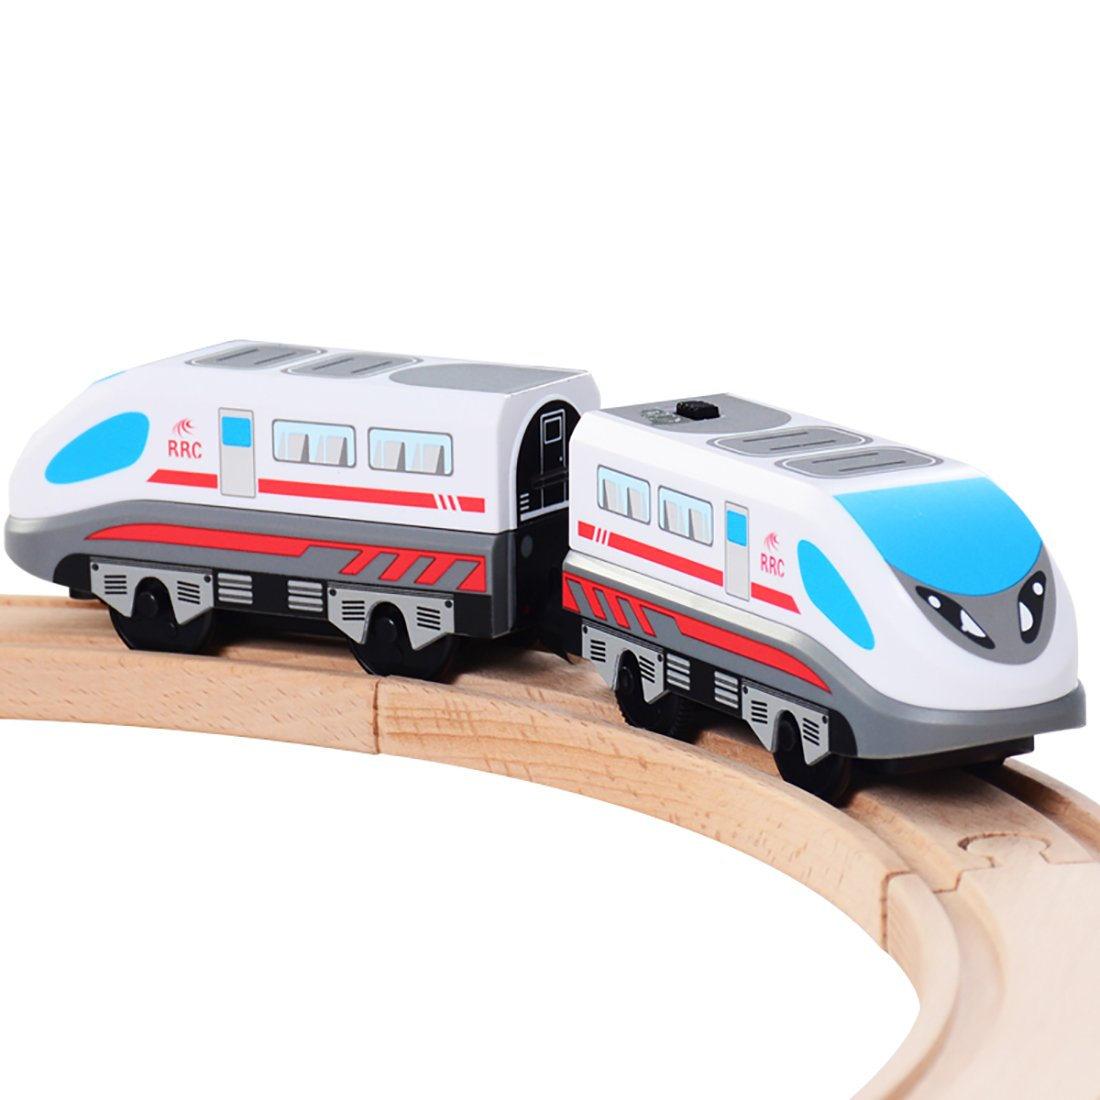 KAJA Engine Bullet Train Toys Magnetic Battery Train Car for Toddlers Compatible with Thomas Brio Tracks